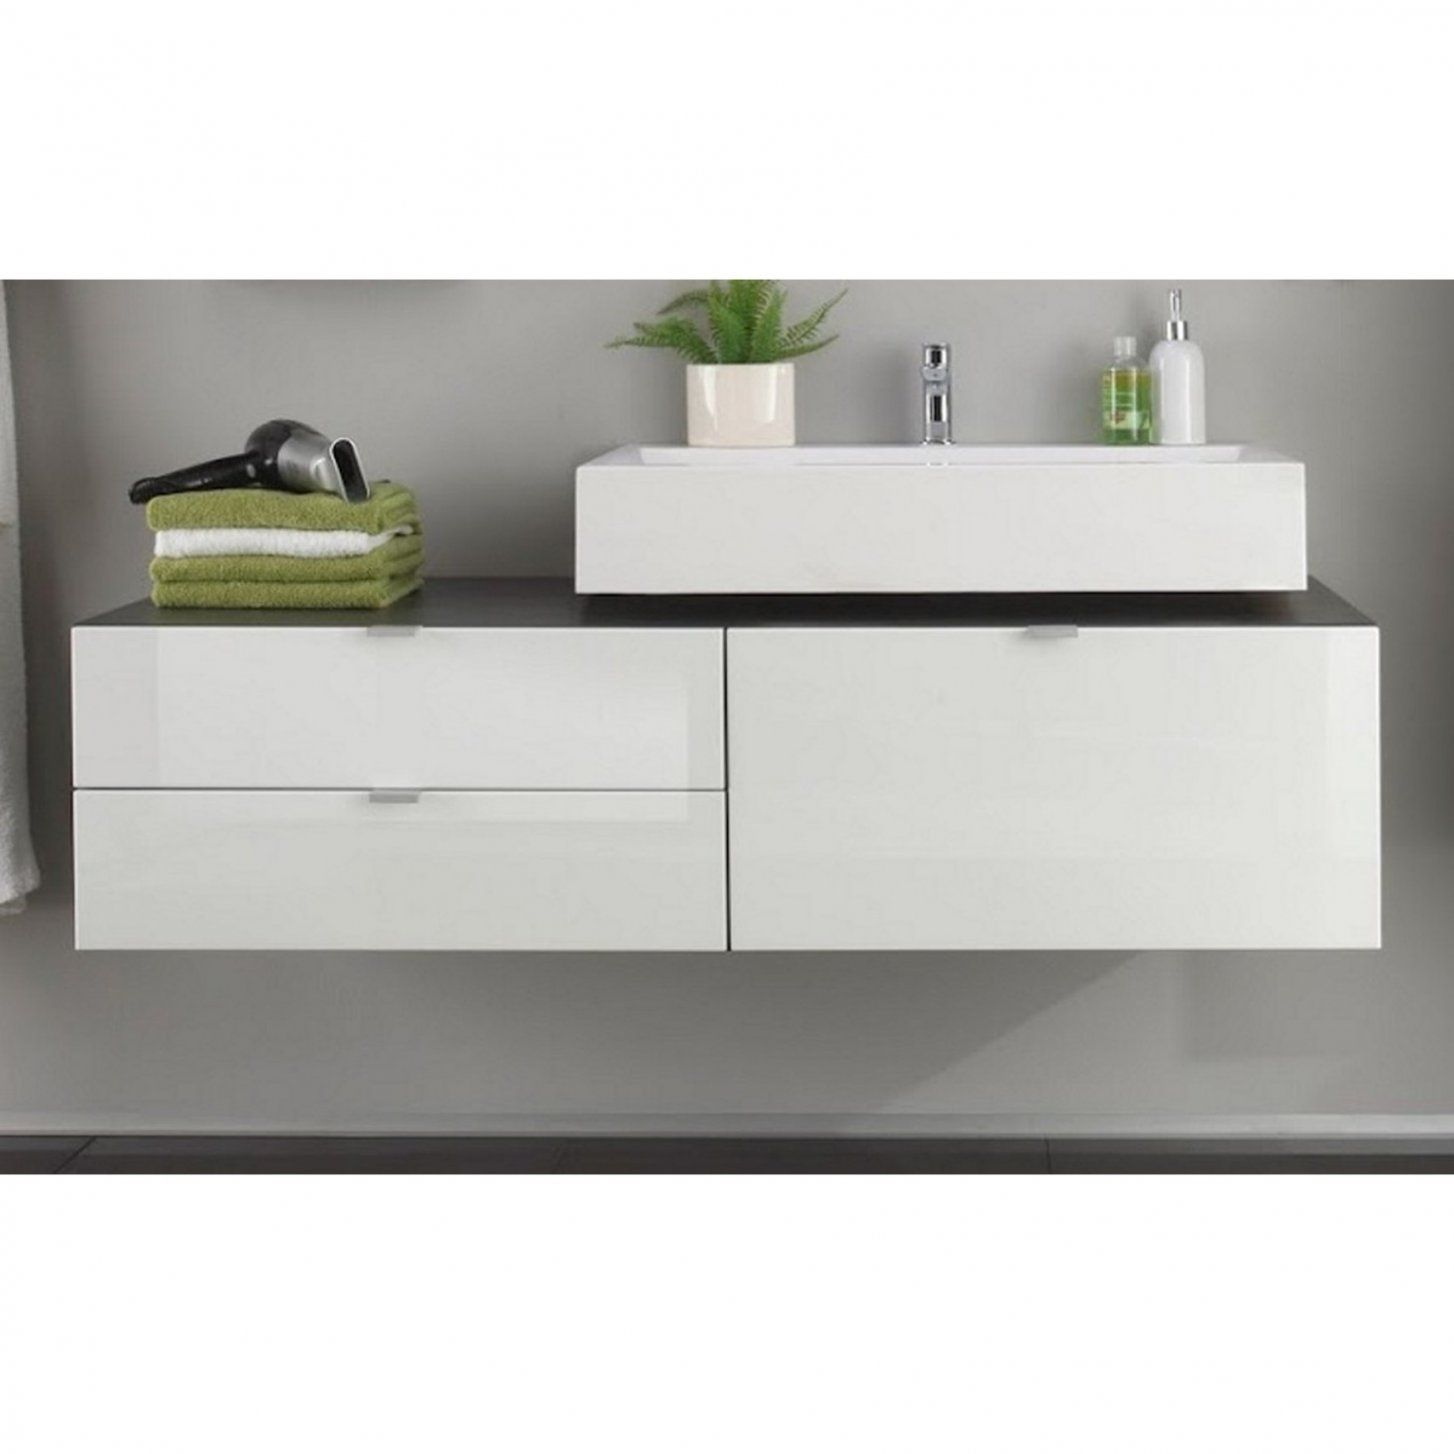 godmorgon odensvik waschbeckenschrank 2 schubl wei ikea. Black Bedroom Furniture Sets. Home Design Ideas